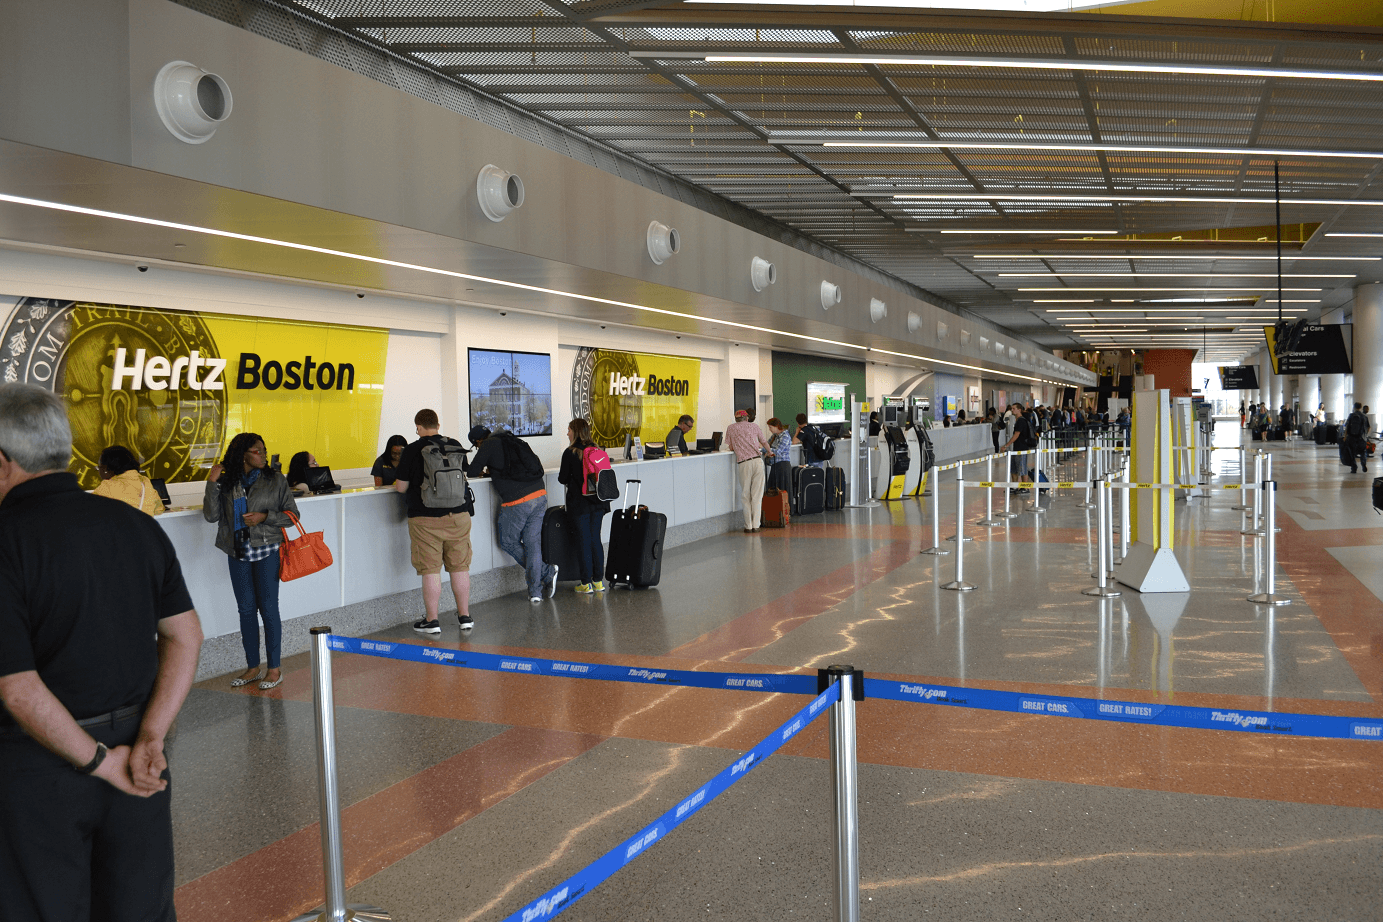 Thrifty Car Rental Boston Airport